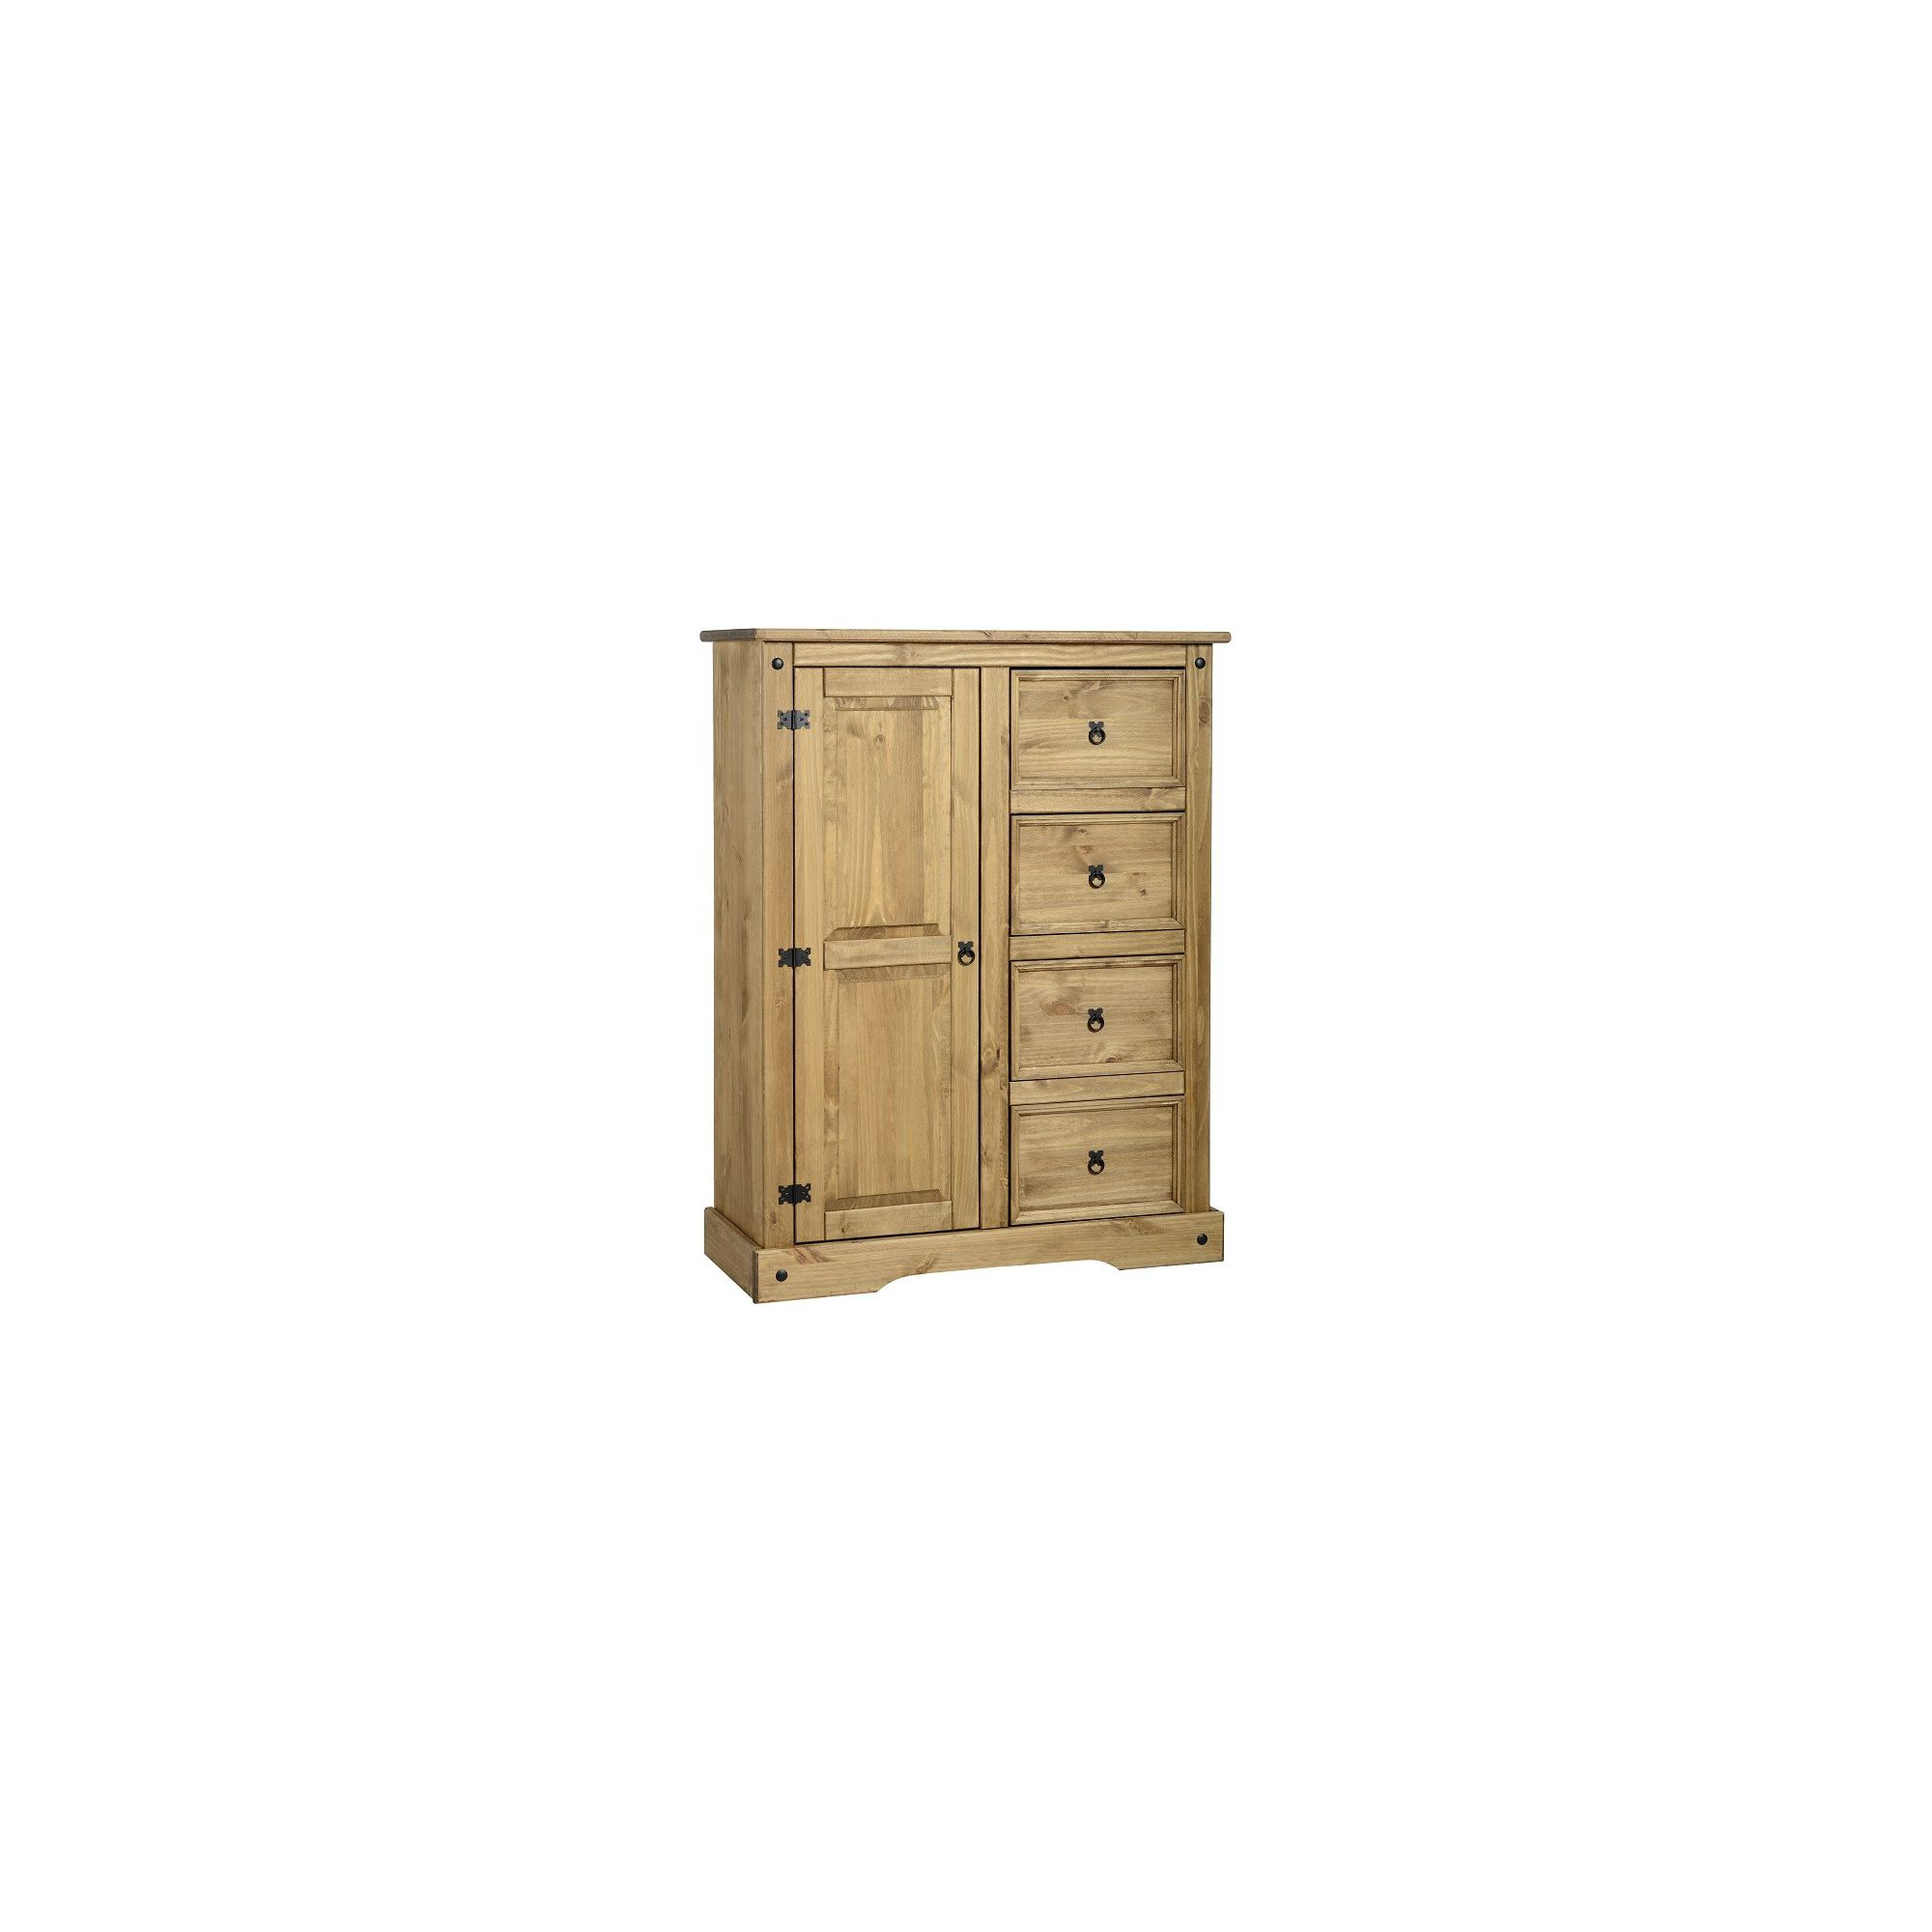 Home Essence Corona 4 Drawer Low Wardrobe at Tesco Direct